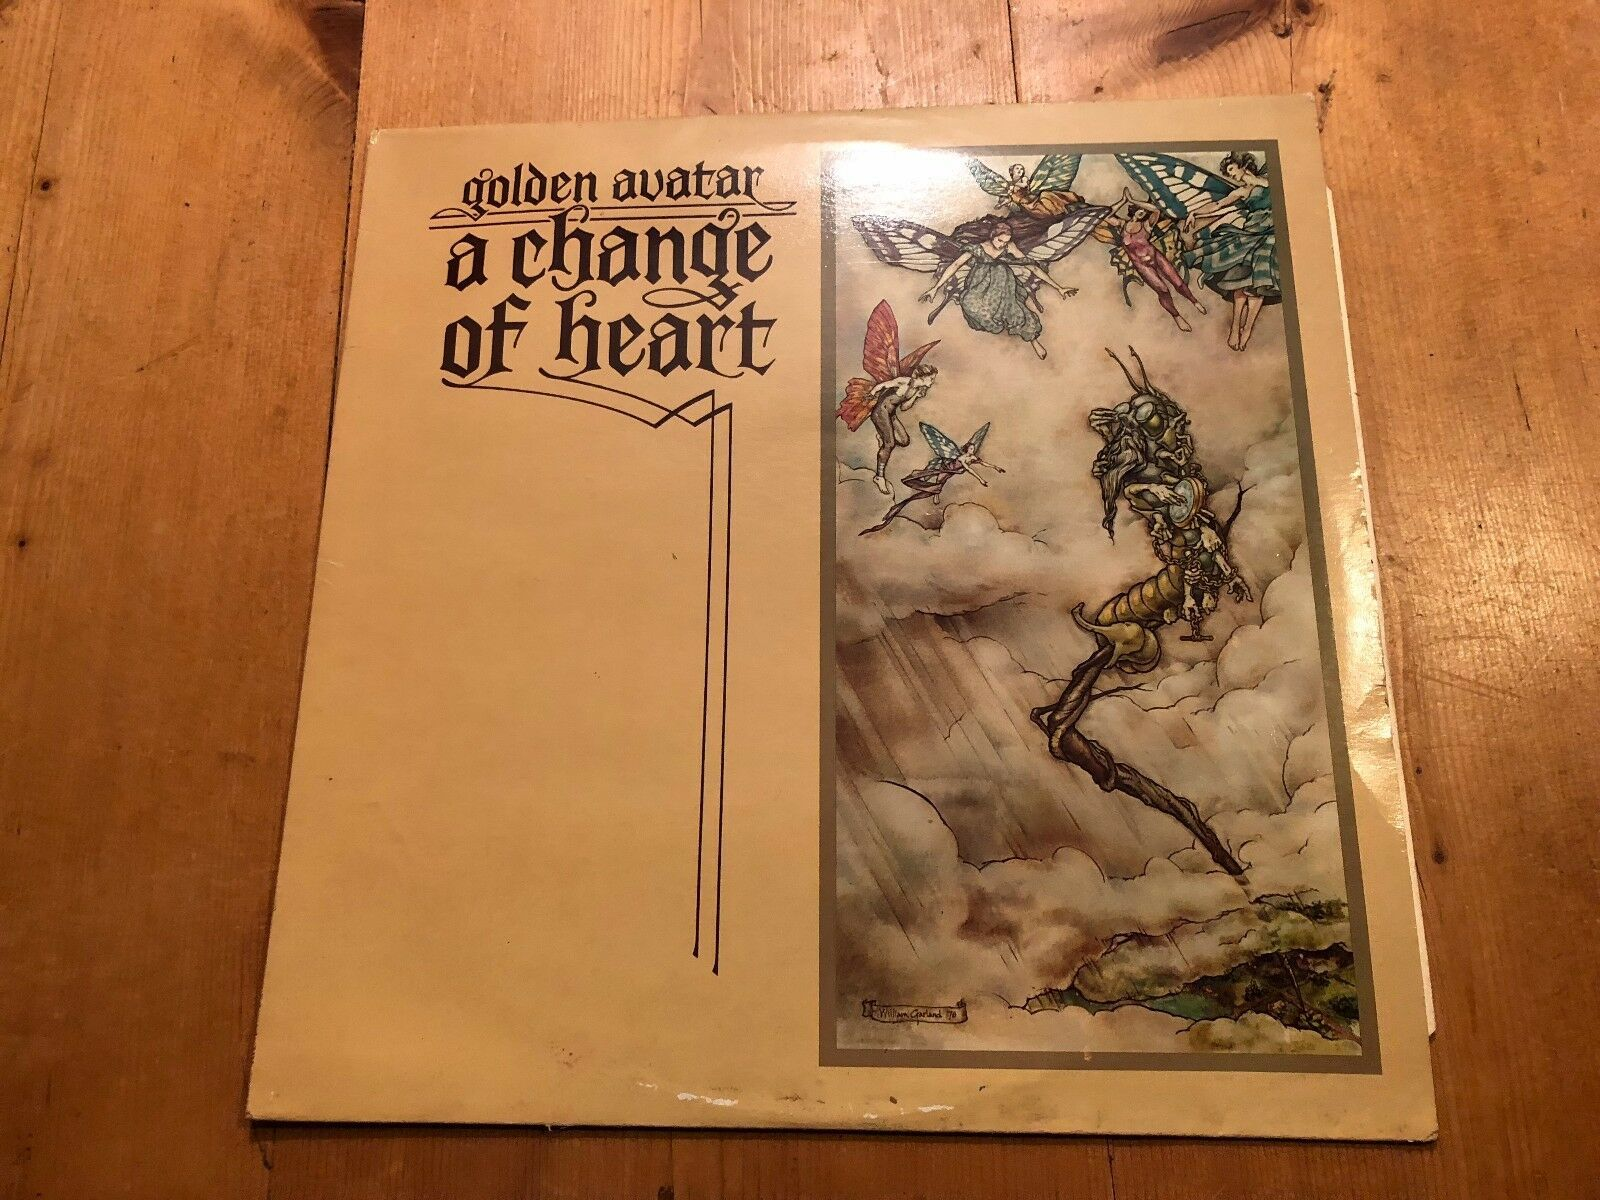 "1976 Golden Avatar a Change Of Heart"" Vinyl LP Album Record"